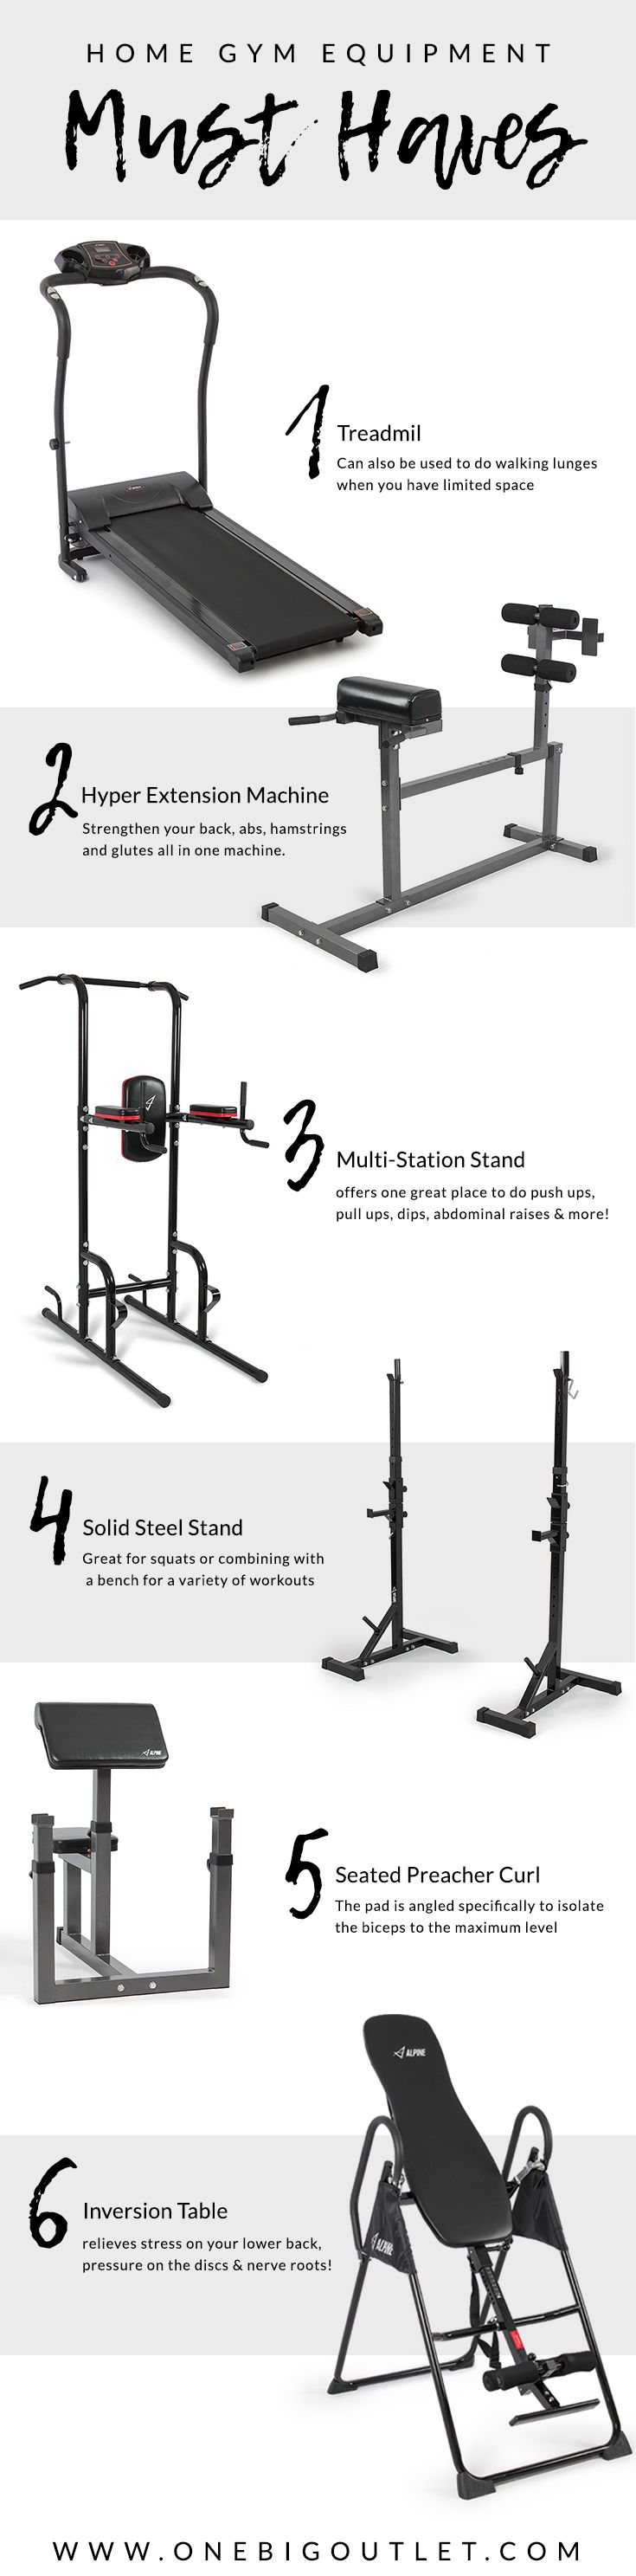 Top home gym equipment must haves! treadmill, hyper extension, multi-station stand, steel stand, seated preacher curl & inversion table! Multiple ways to use each machine